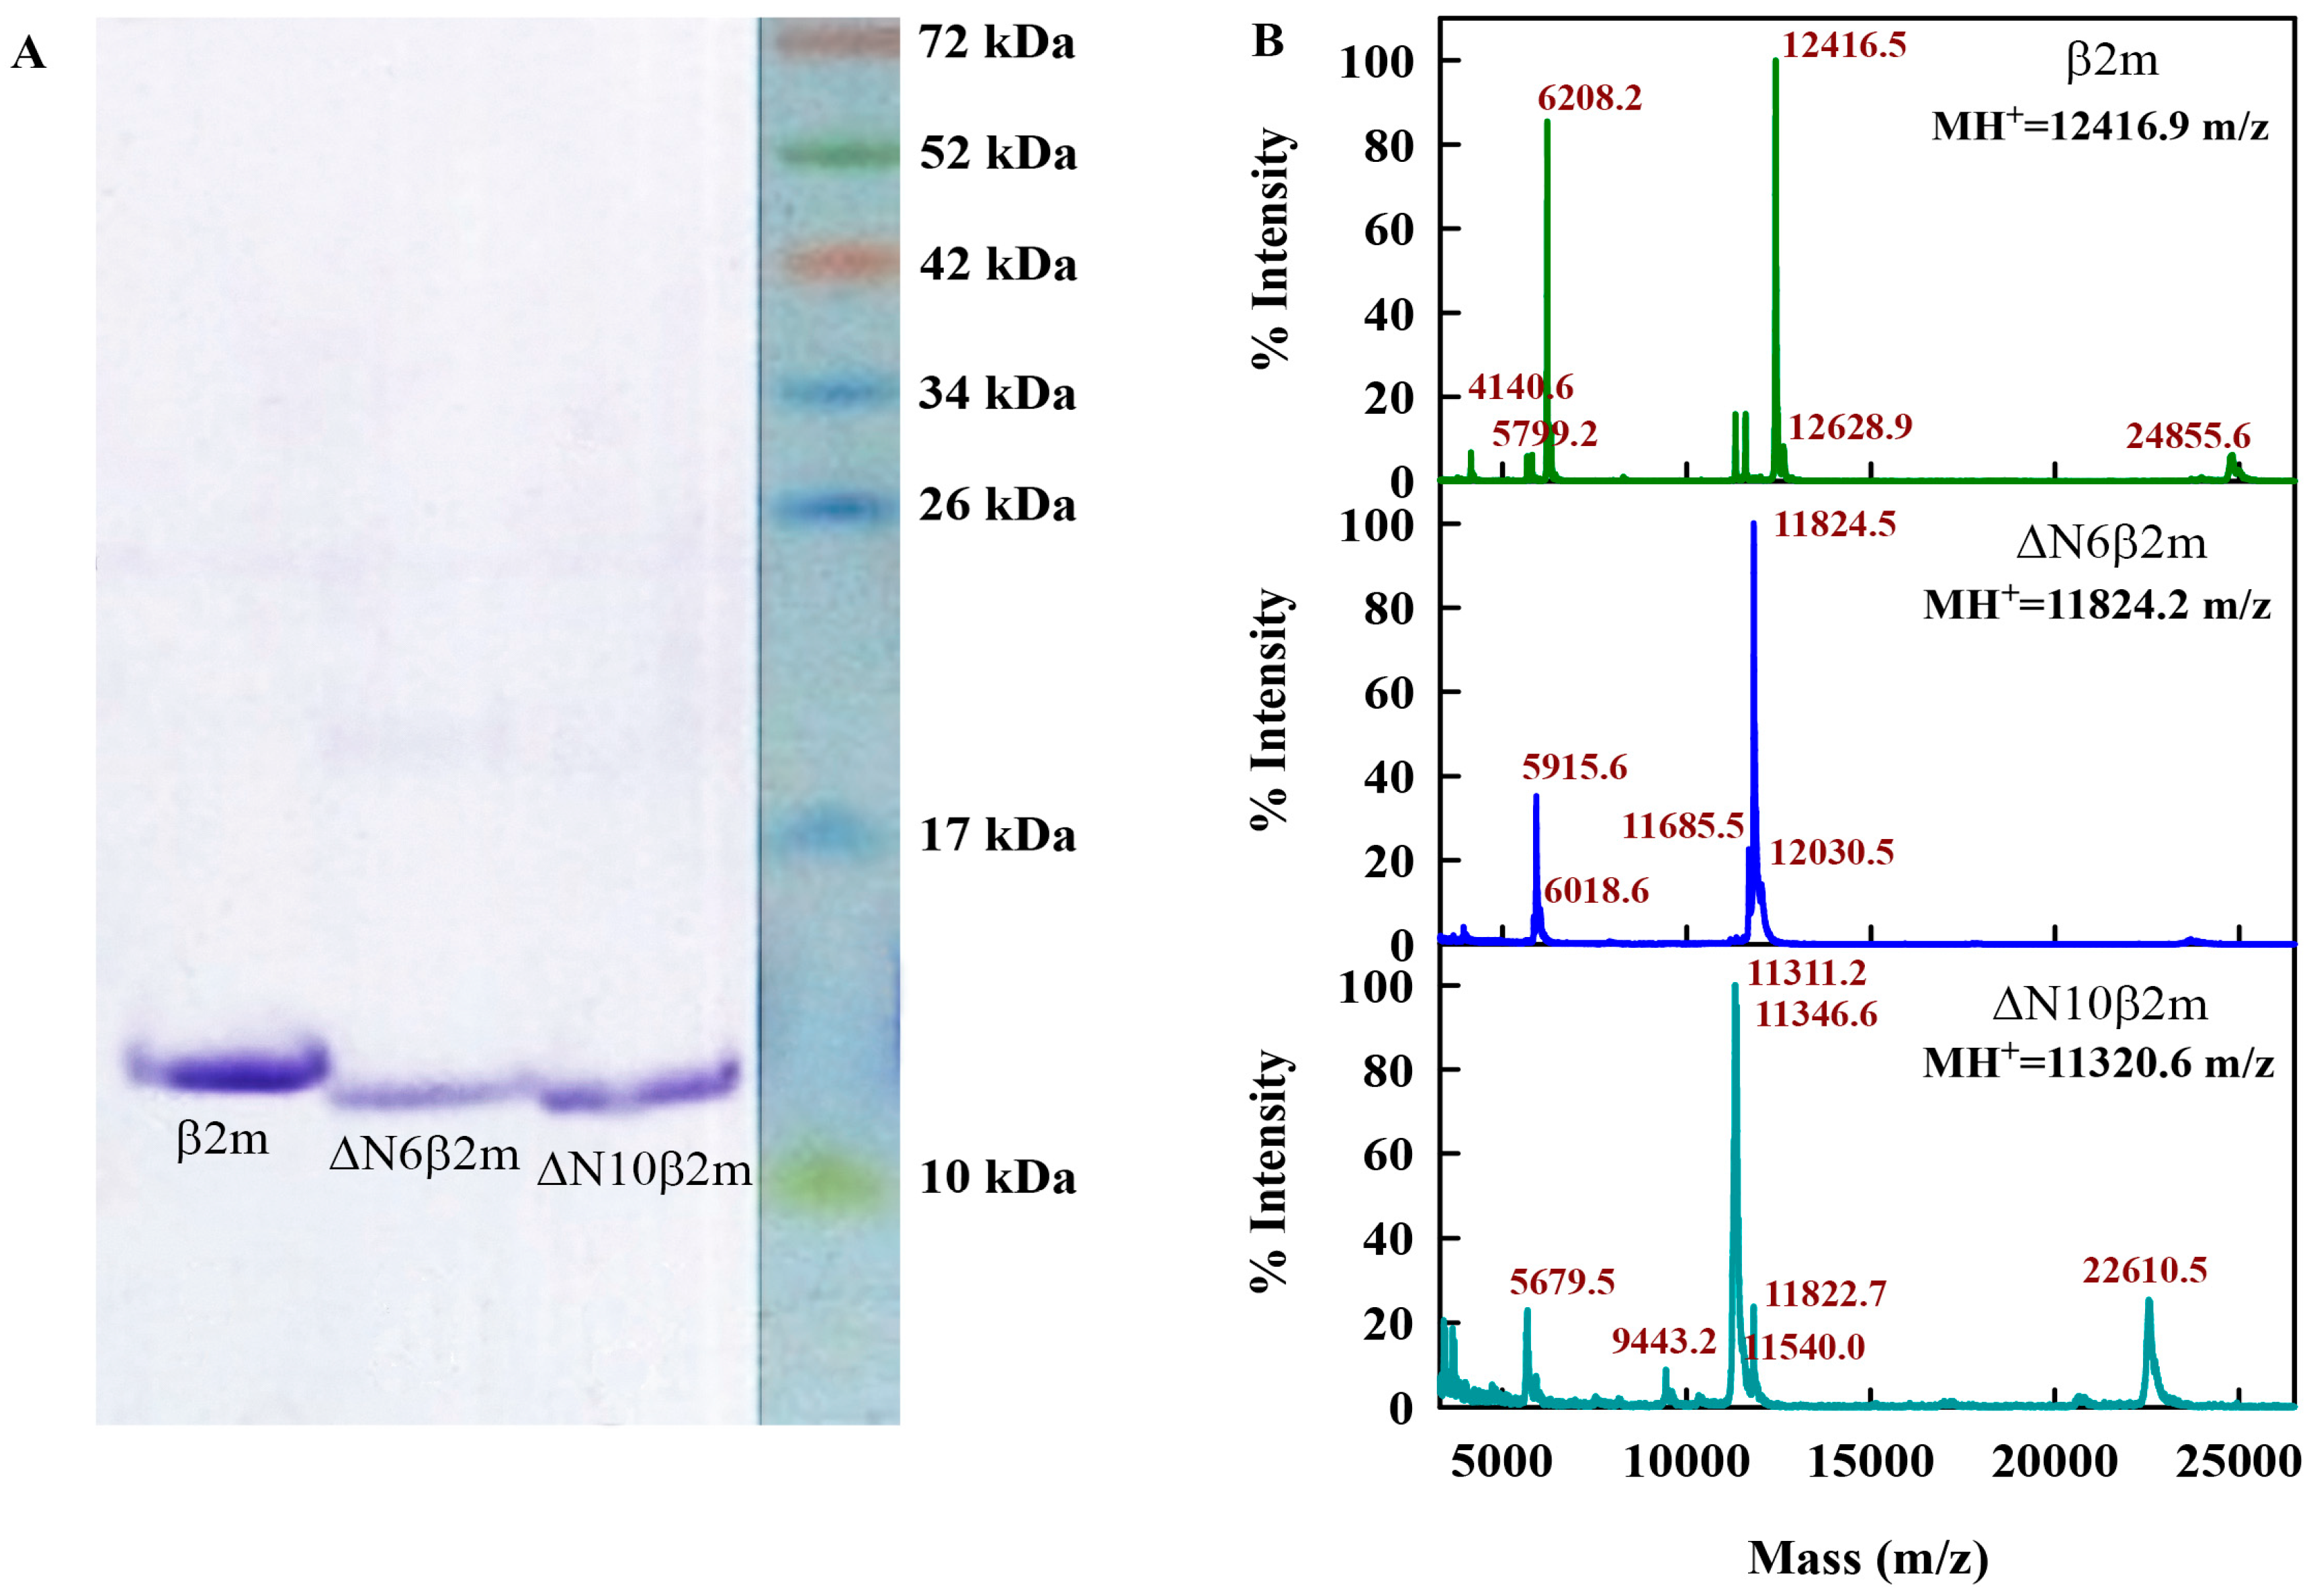 Ijms Free Full Text Structural Features Of Amyloid Fibrils Formed From The Full Length And Truncated Forms Of Beta 2 Microglobulin Probed By Fluorescent Dye Thioflavin T Html Check twist.moe with our free review tool and find out if twist.moe is legit and reliable. fluorescent dye thioflavin t